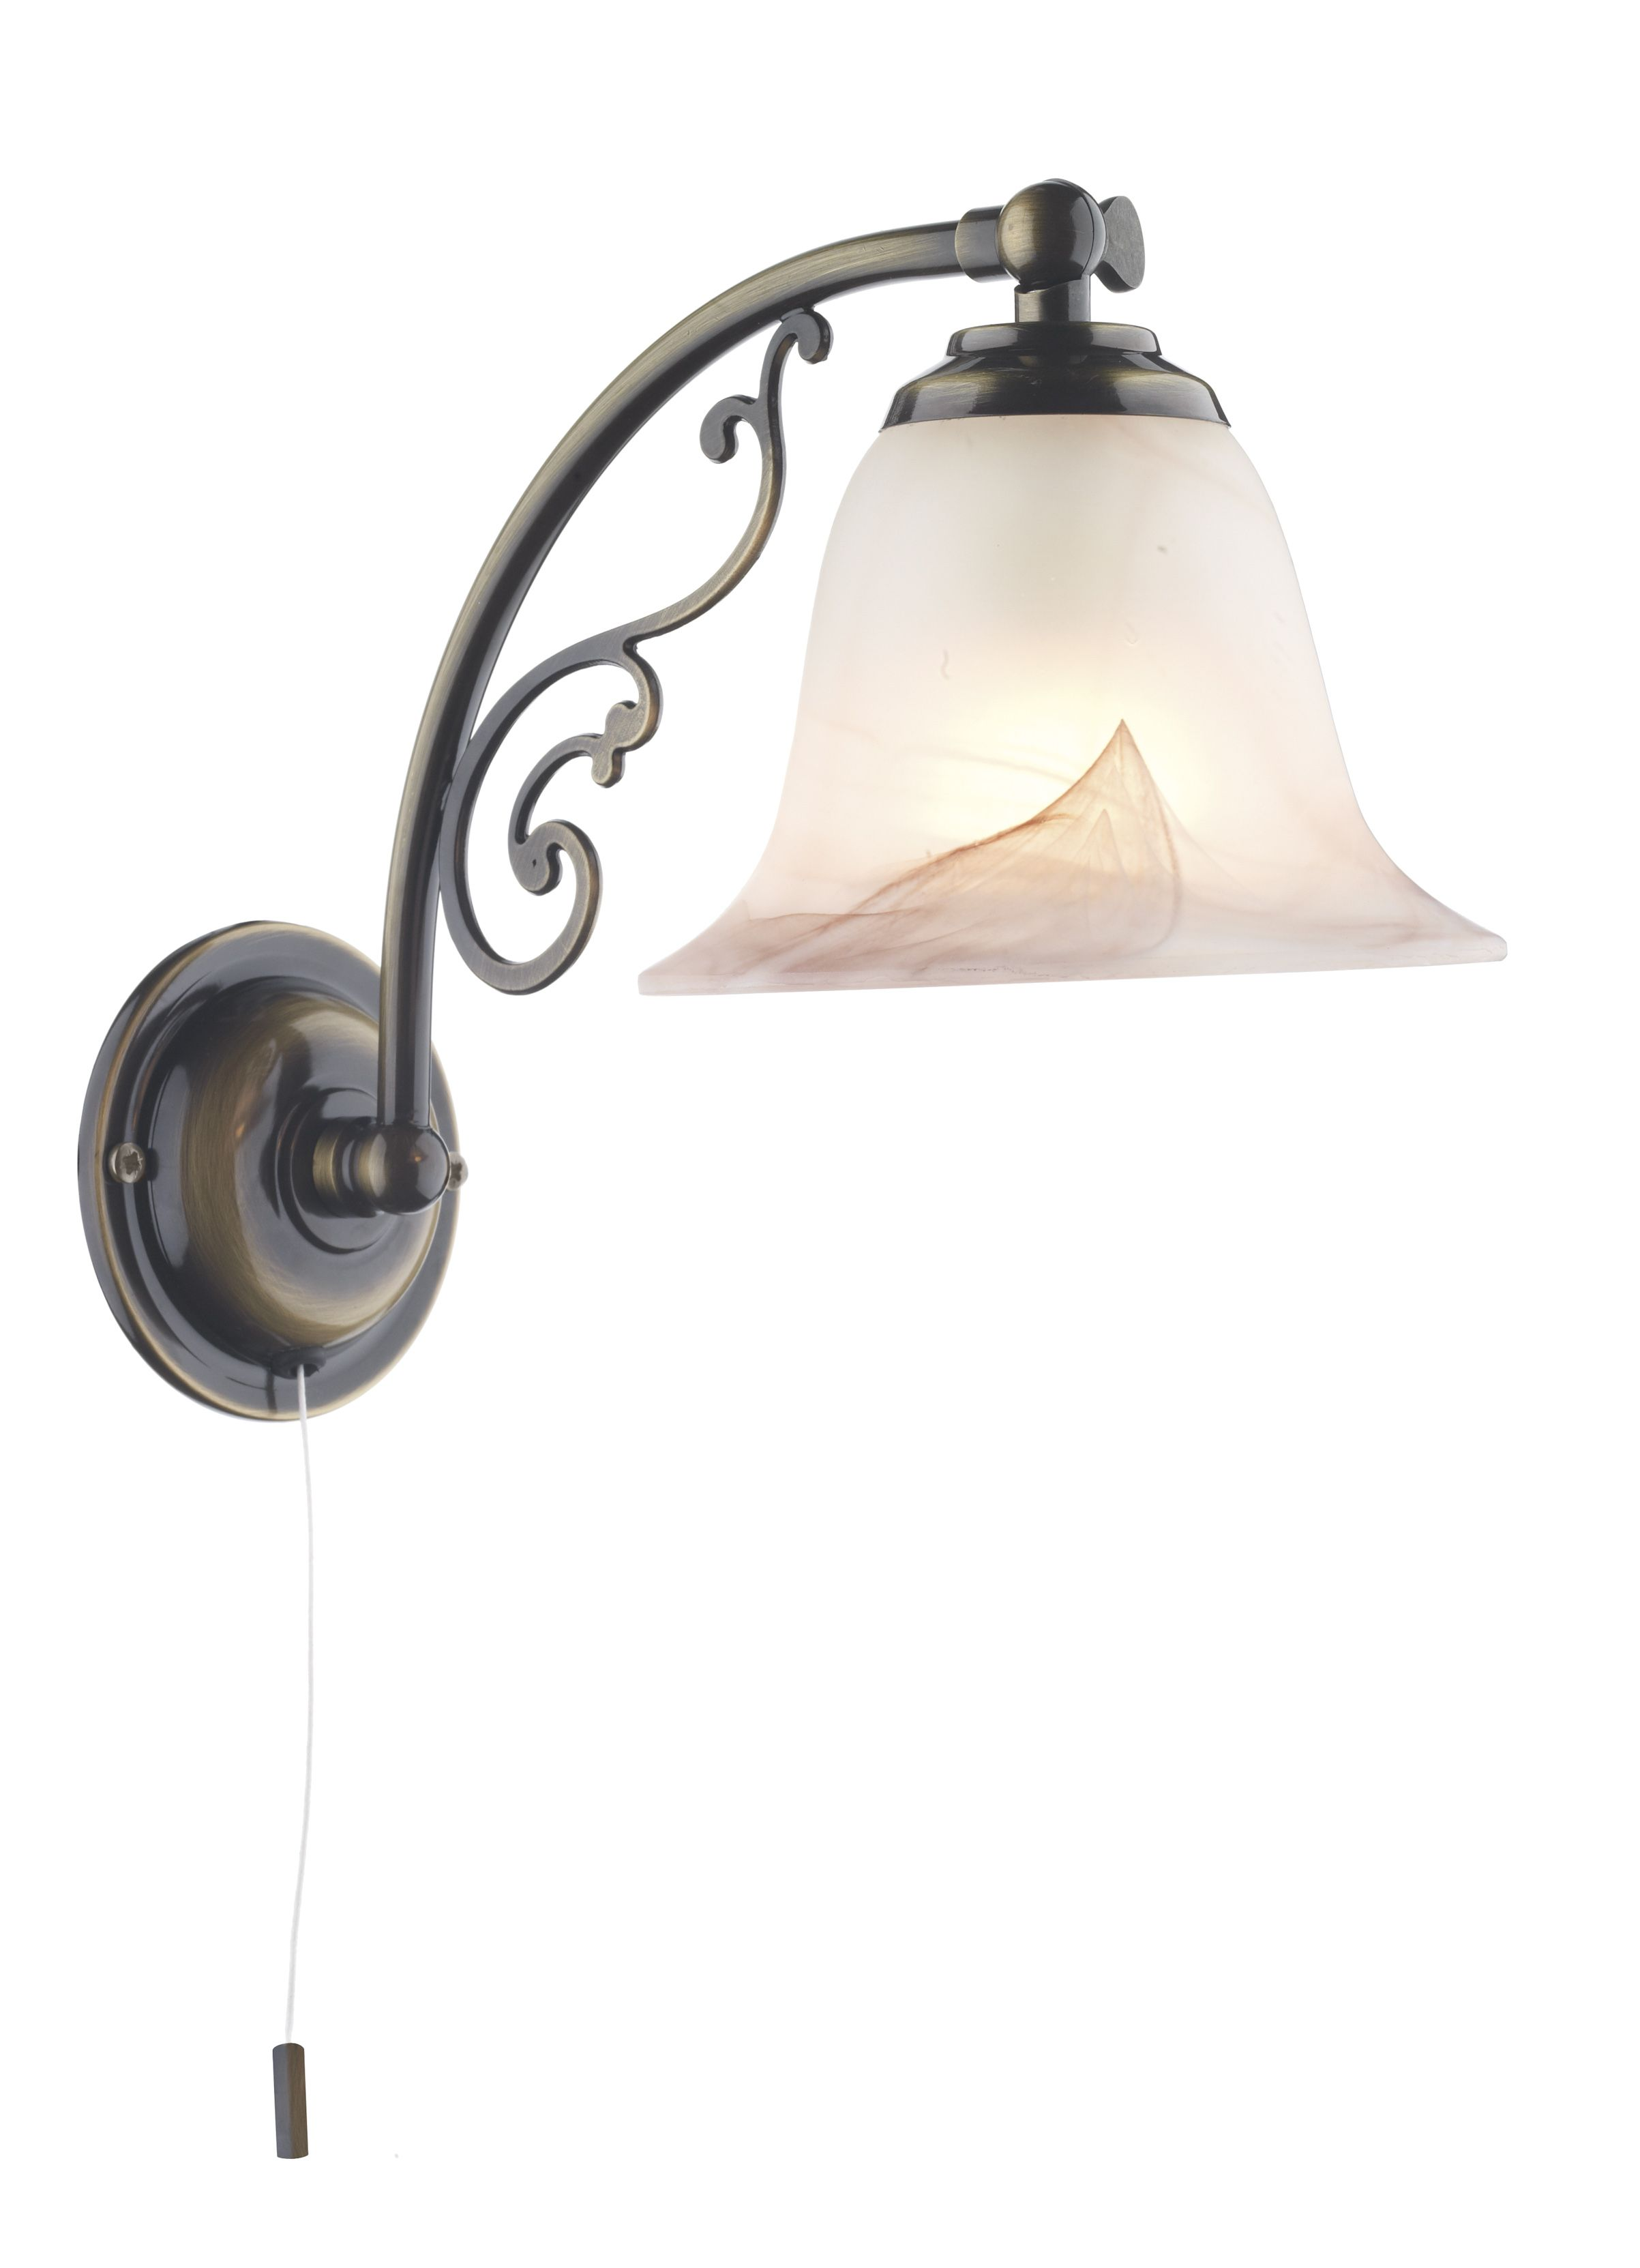 wall lamps with cord target with decorative up/down wall lamp with classic brass design ...